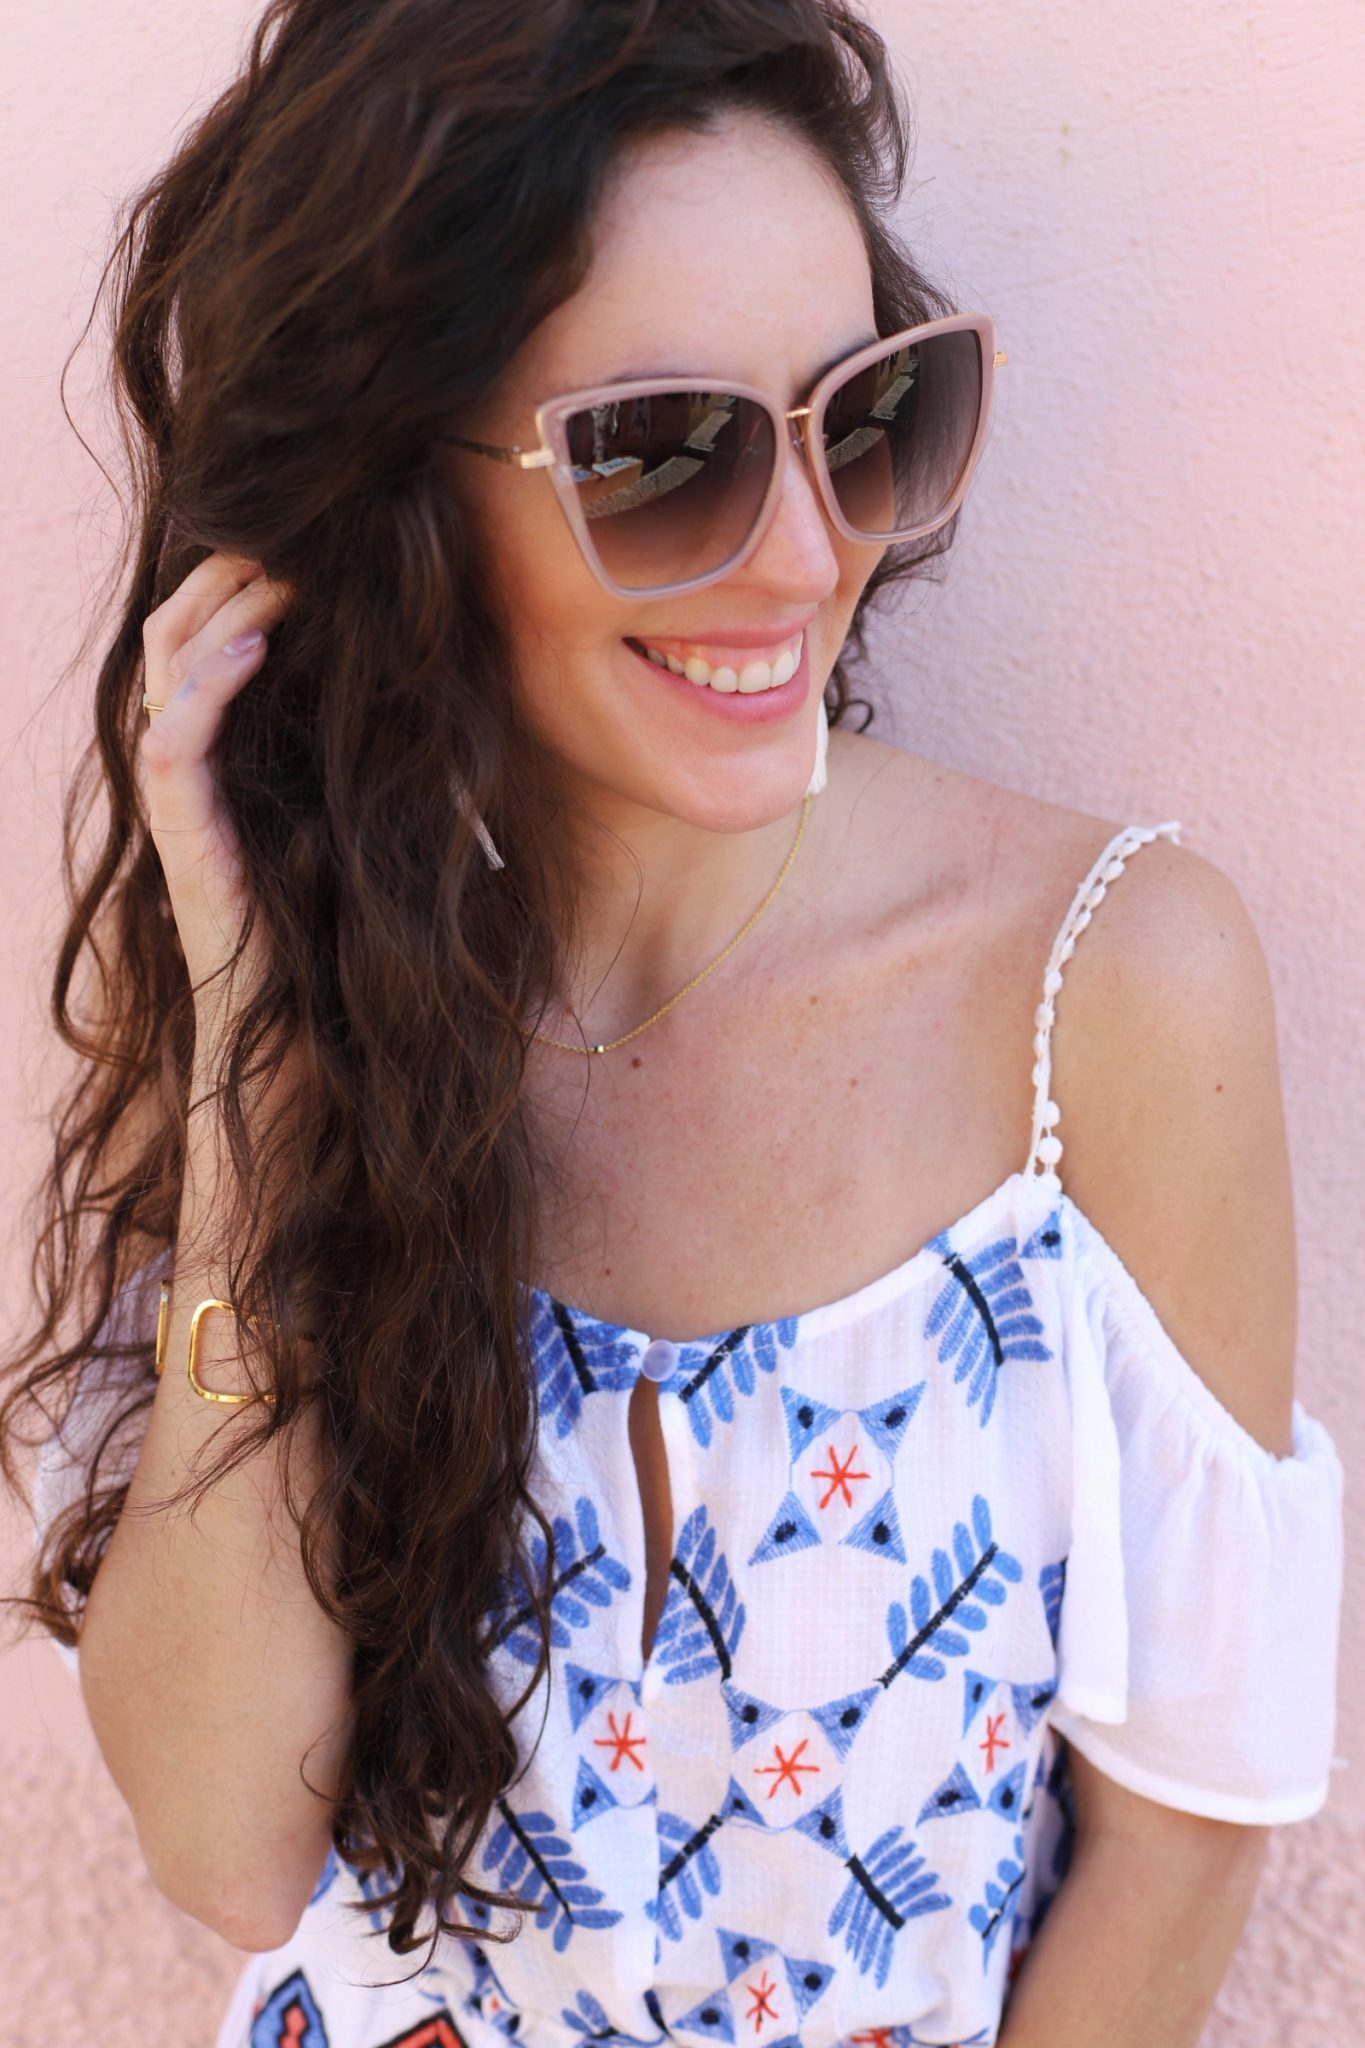 oia santorini, blue domes, where to go in oia, where to go in santorini, greece, south moon under ABBELINE EMBROIDERED SCOOP BACK COLD SHOULDER TOP, what to wear in santorini, white and blue outfit, summer outfit ideas, greece outfit ideas, travel style inspiration